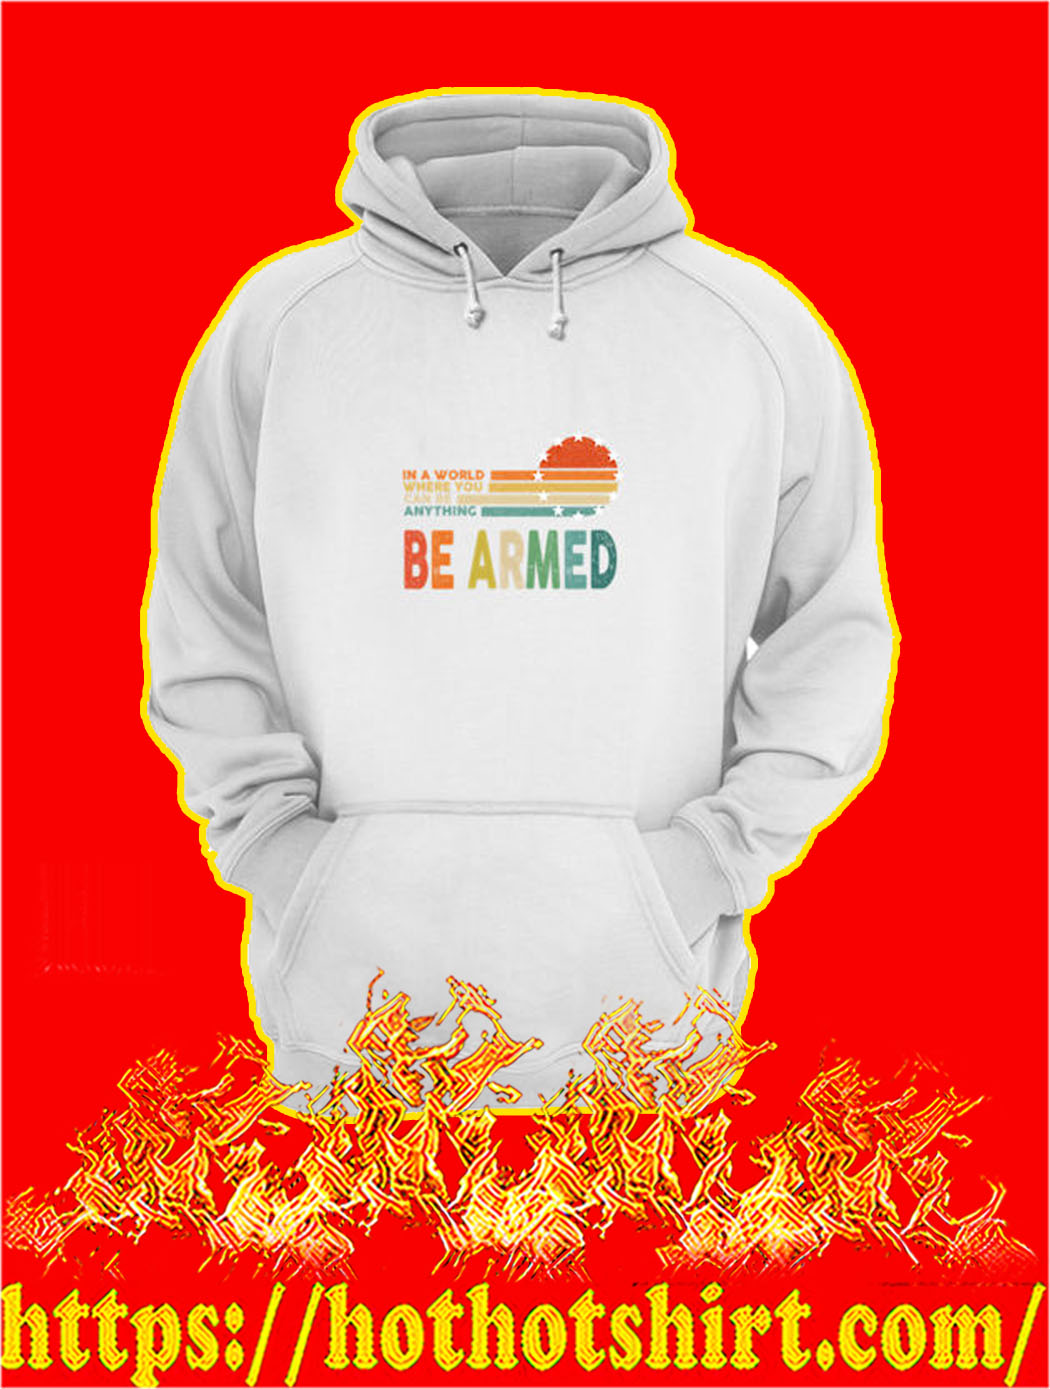 In A World Where You Can Be Anything Be Armed hoodie